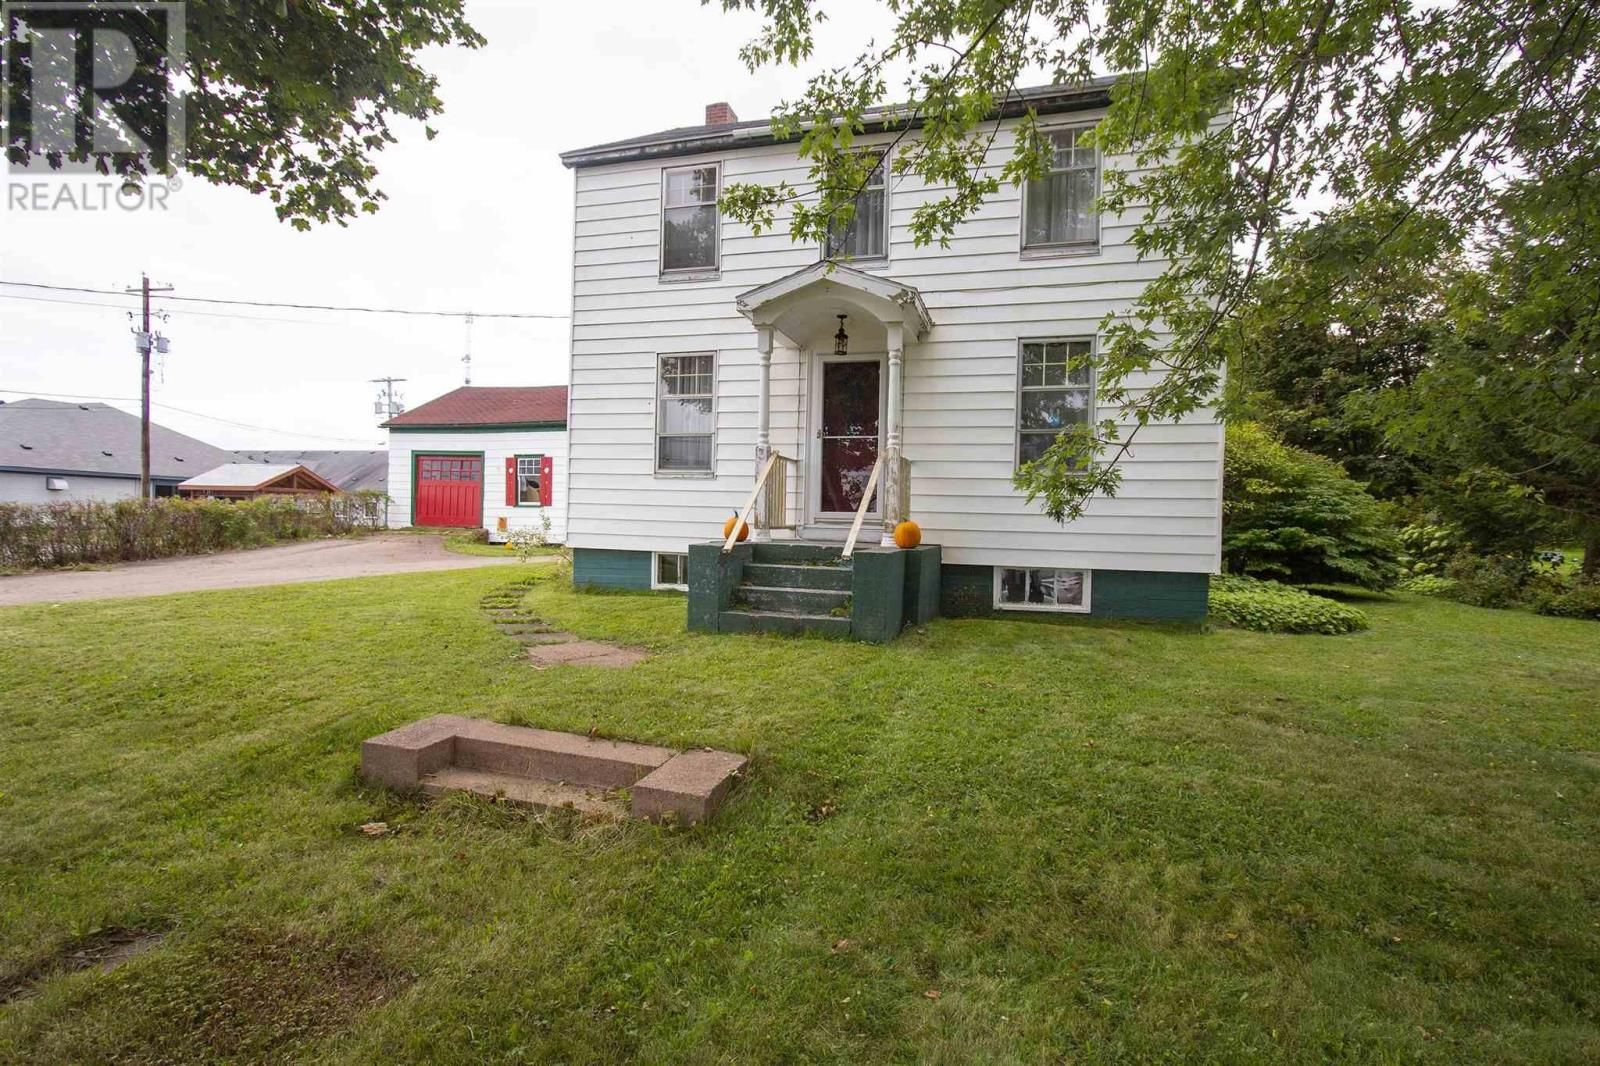 Main Photo: 3 Sproule Street in Springhill: House for sale : MLS®# 202124075